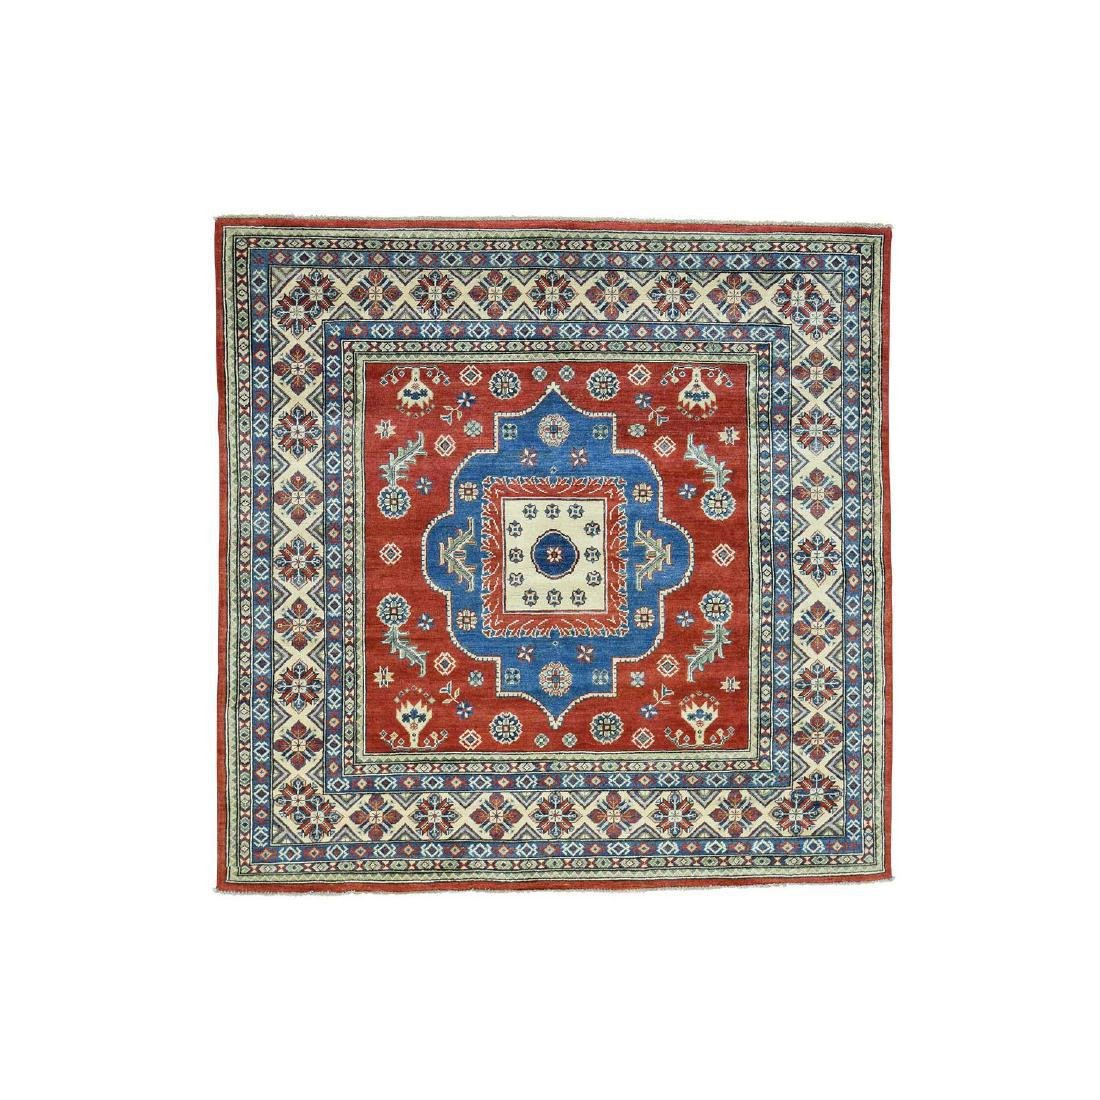 Hand-Knotted Kazak Square Tribal Design Rug 6.7x6.7